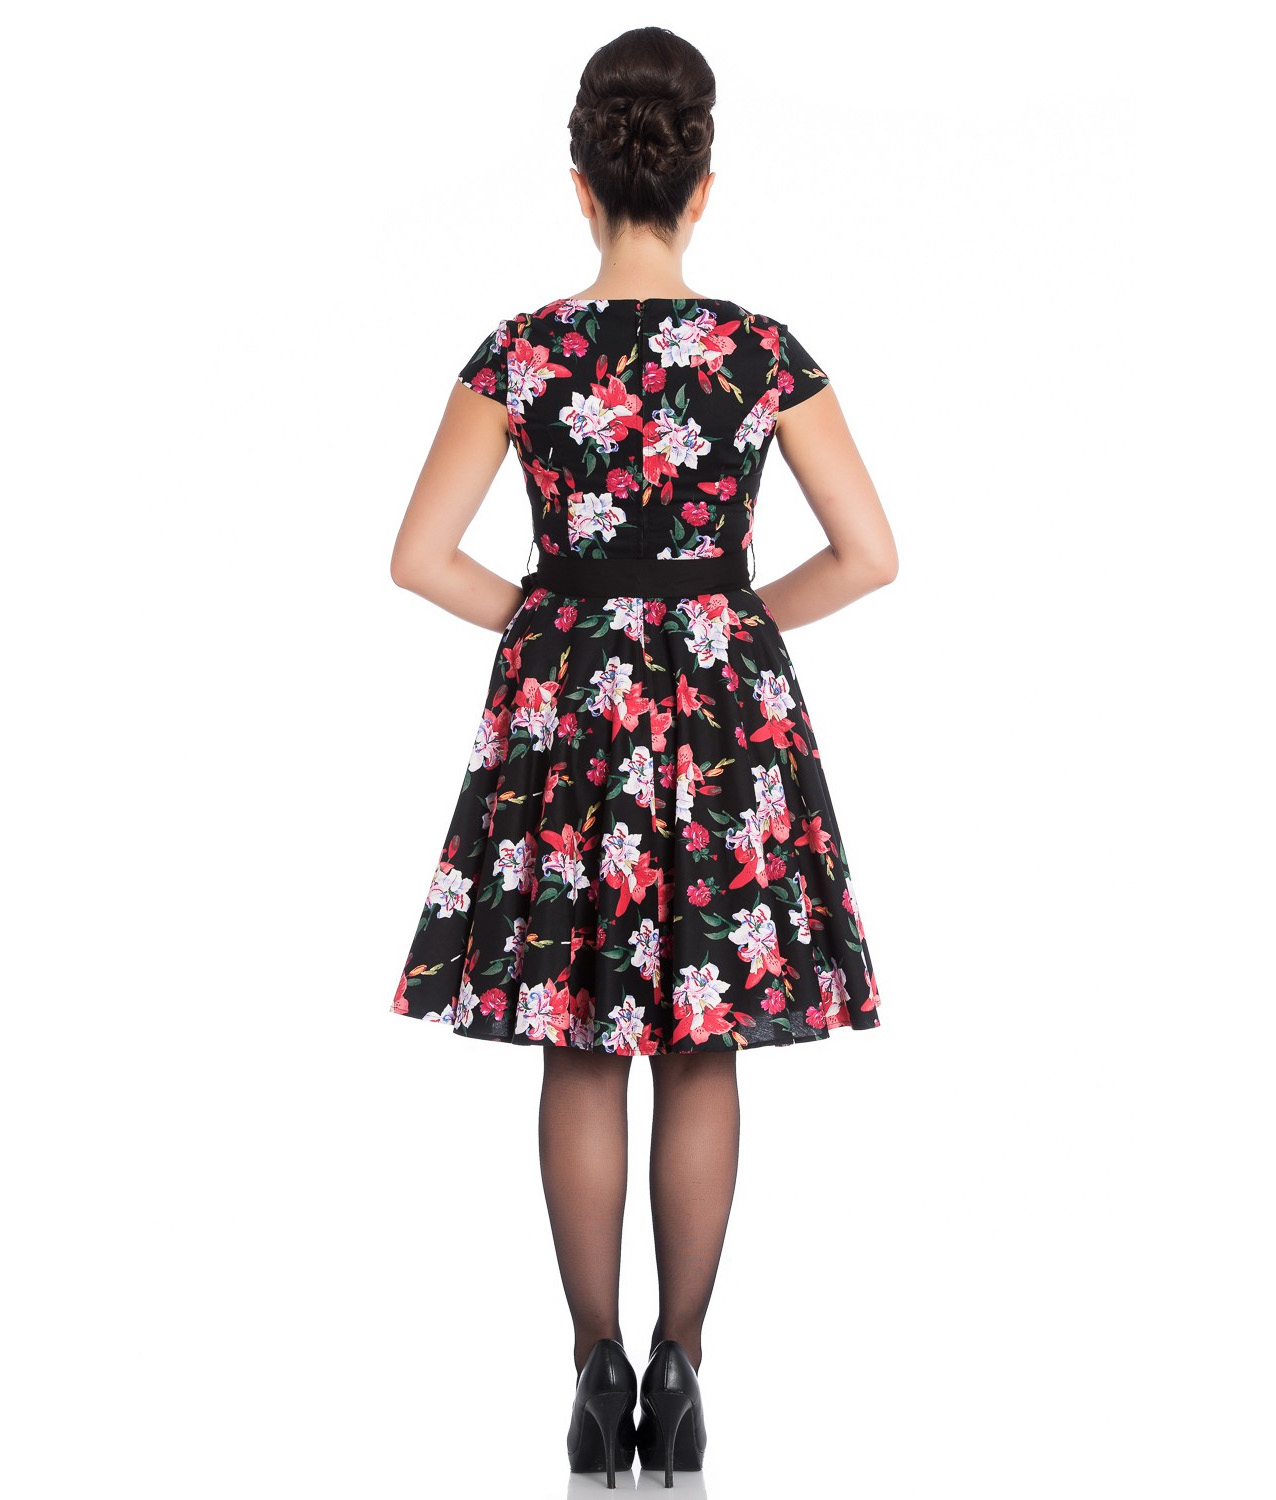 Hell-Bunny-Pin-Up-Mid-Length-50s-Dress-LILIANA-Lilly-Black-Flowers-Bow-All-Sizes thumbnail 5